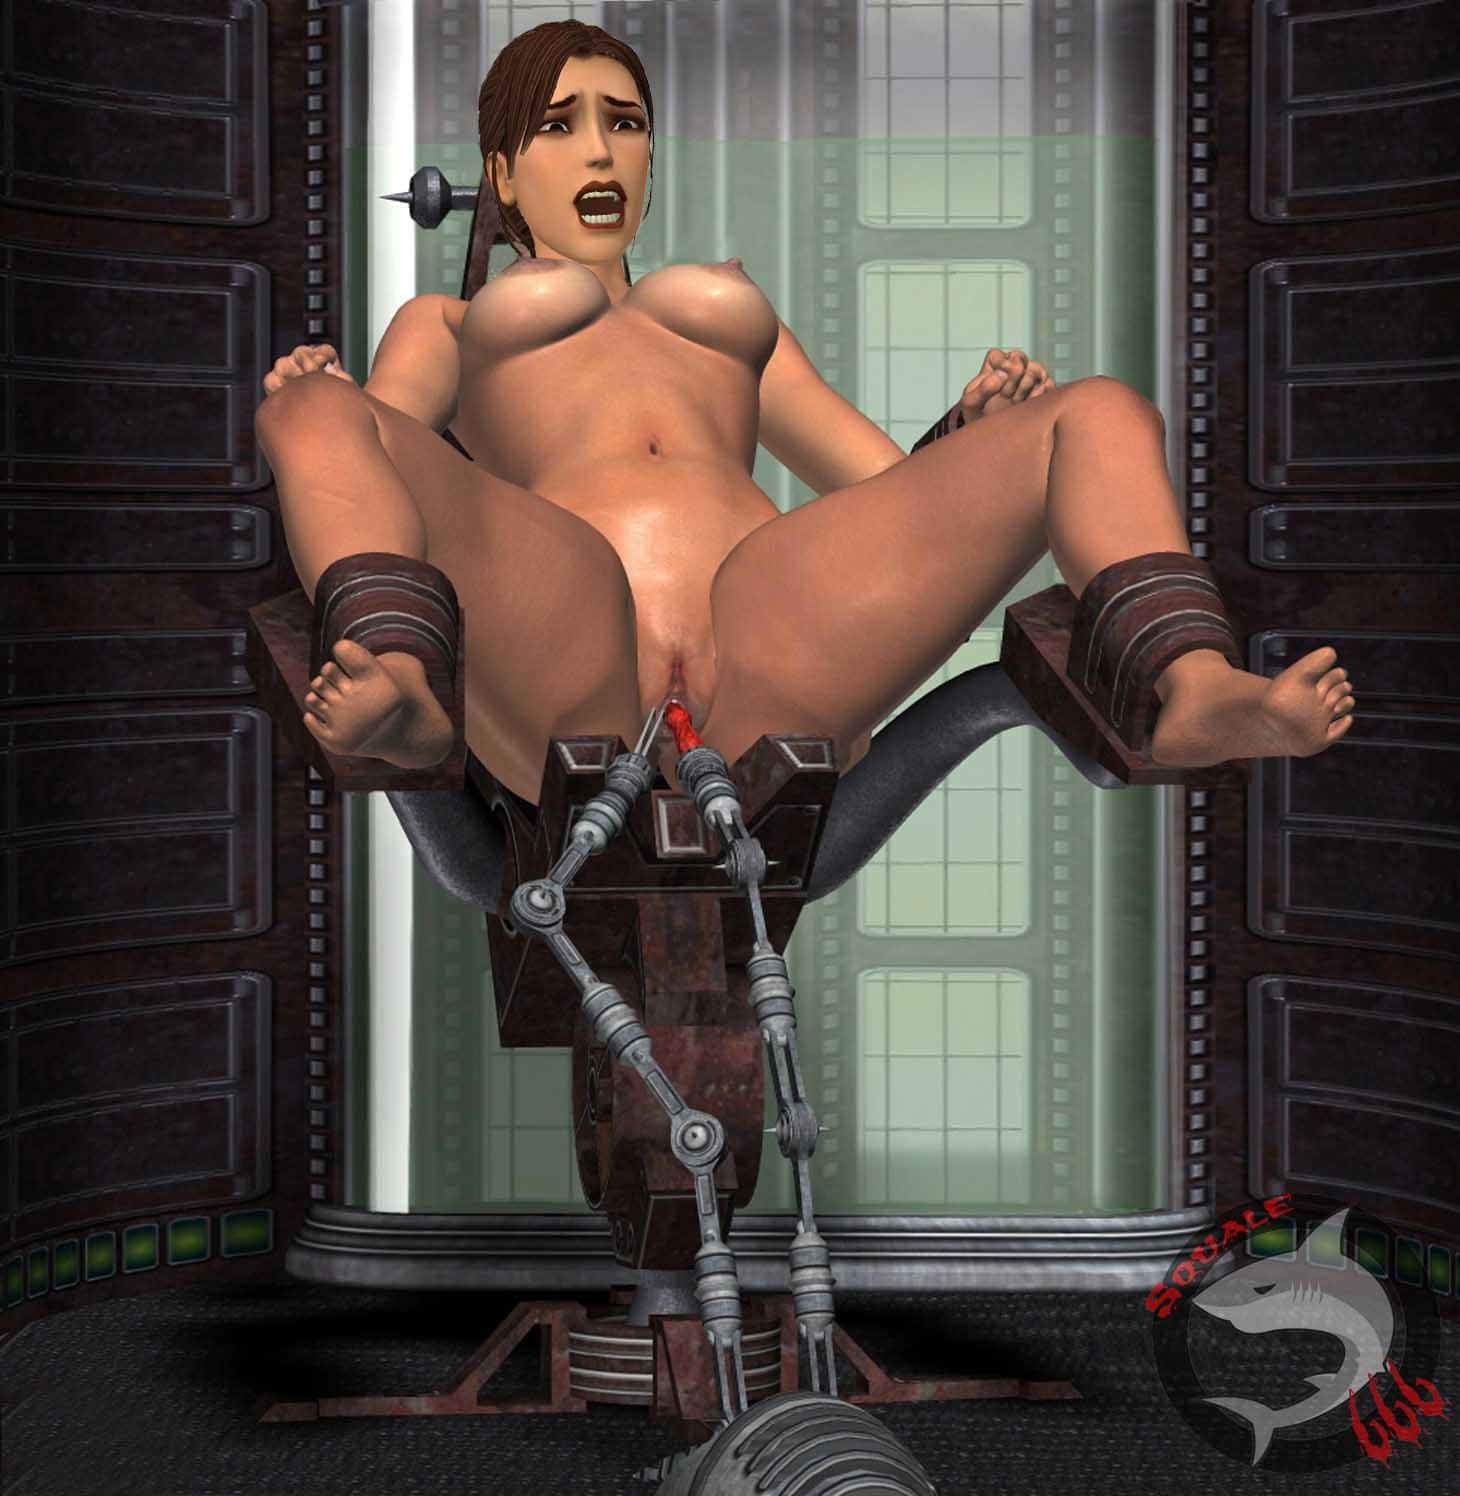 Tomb raider boob nude photo gallary exploited pic